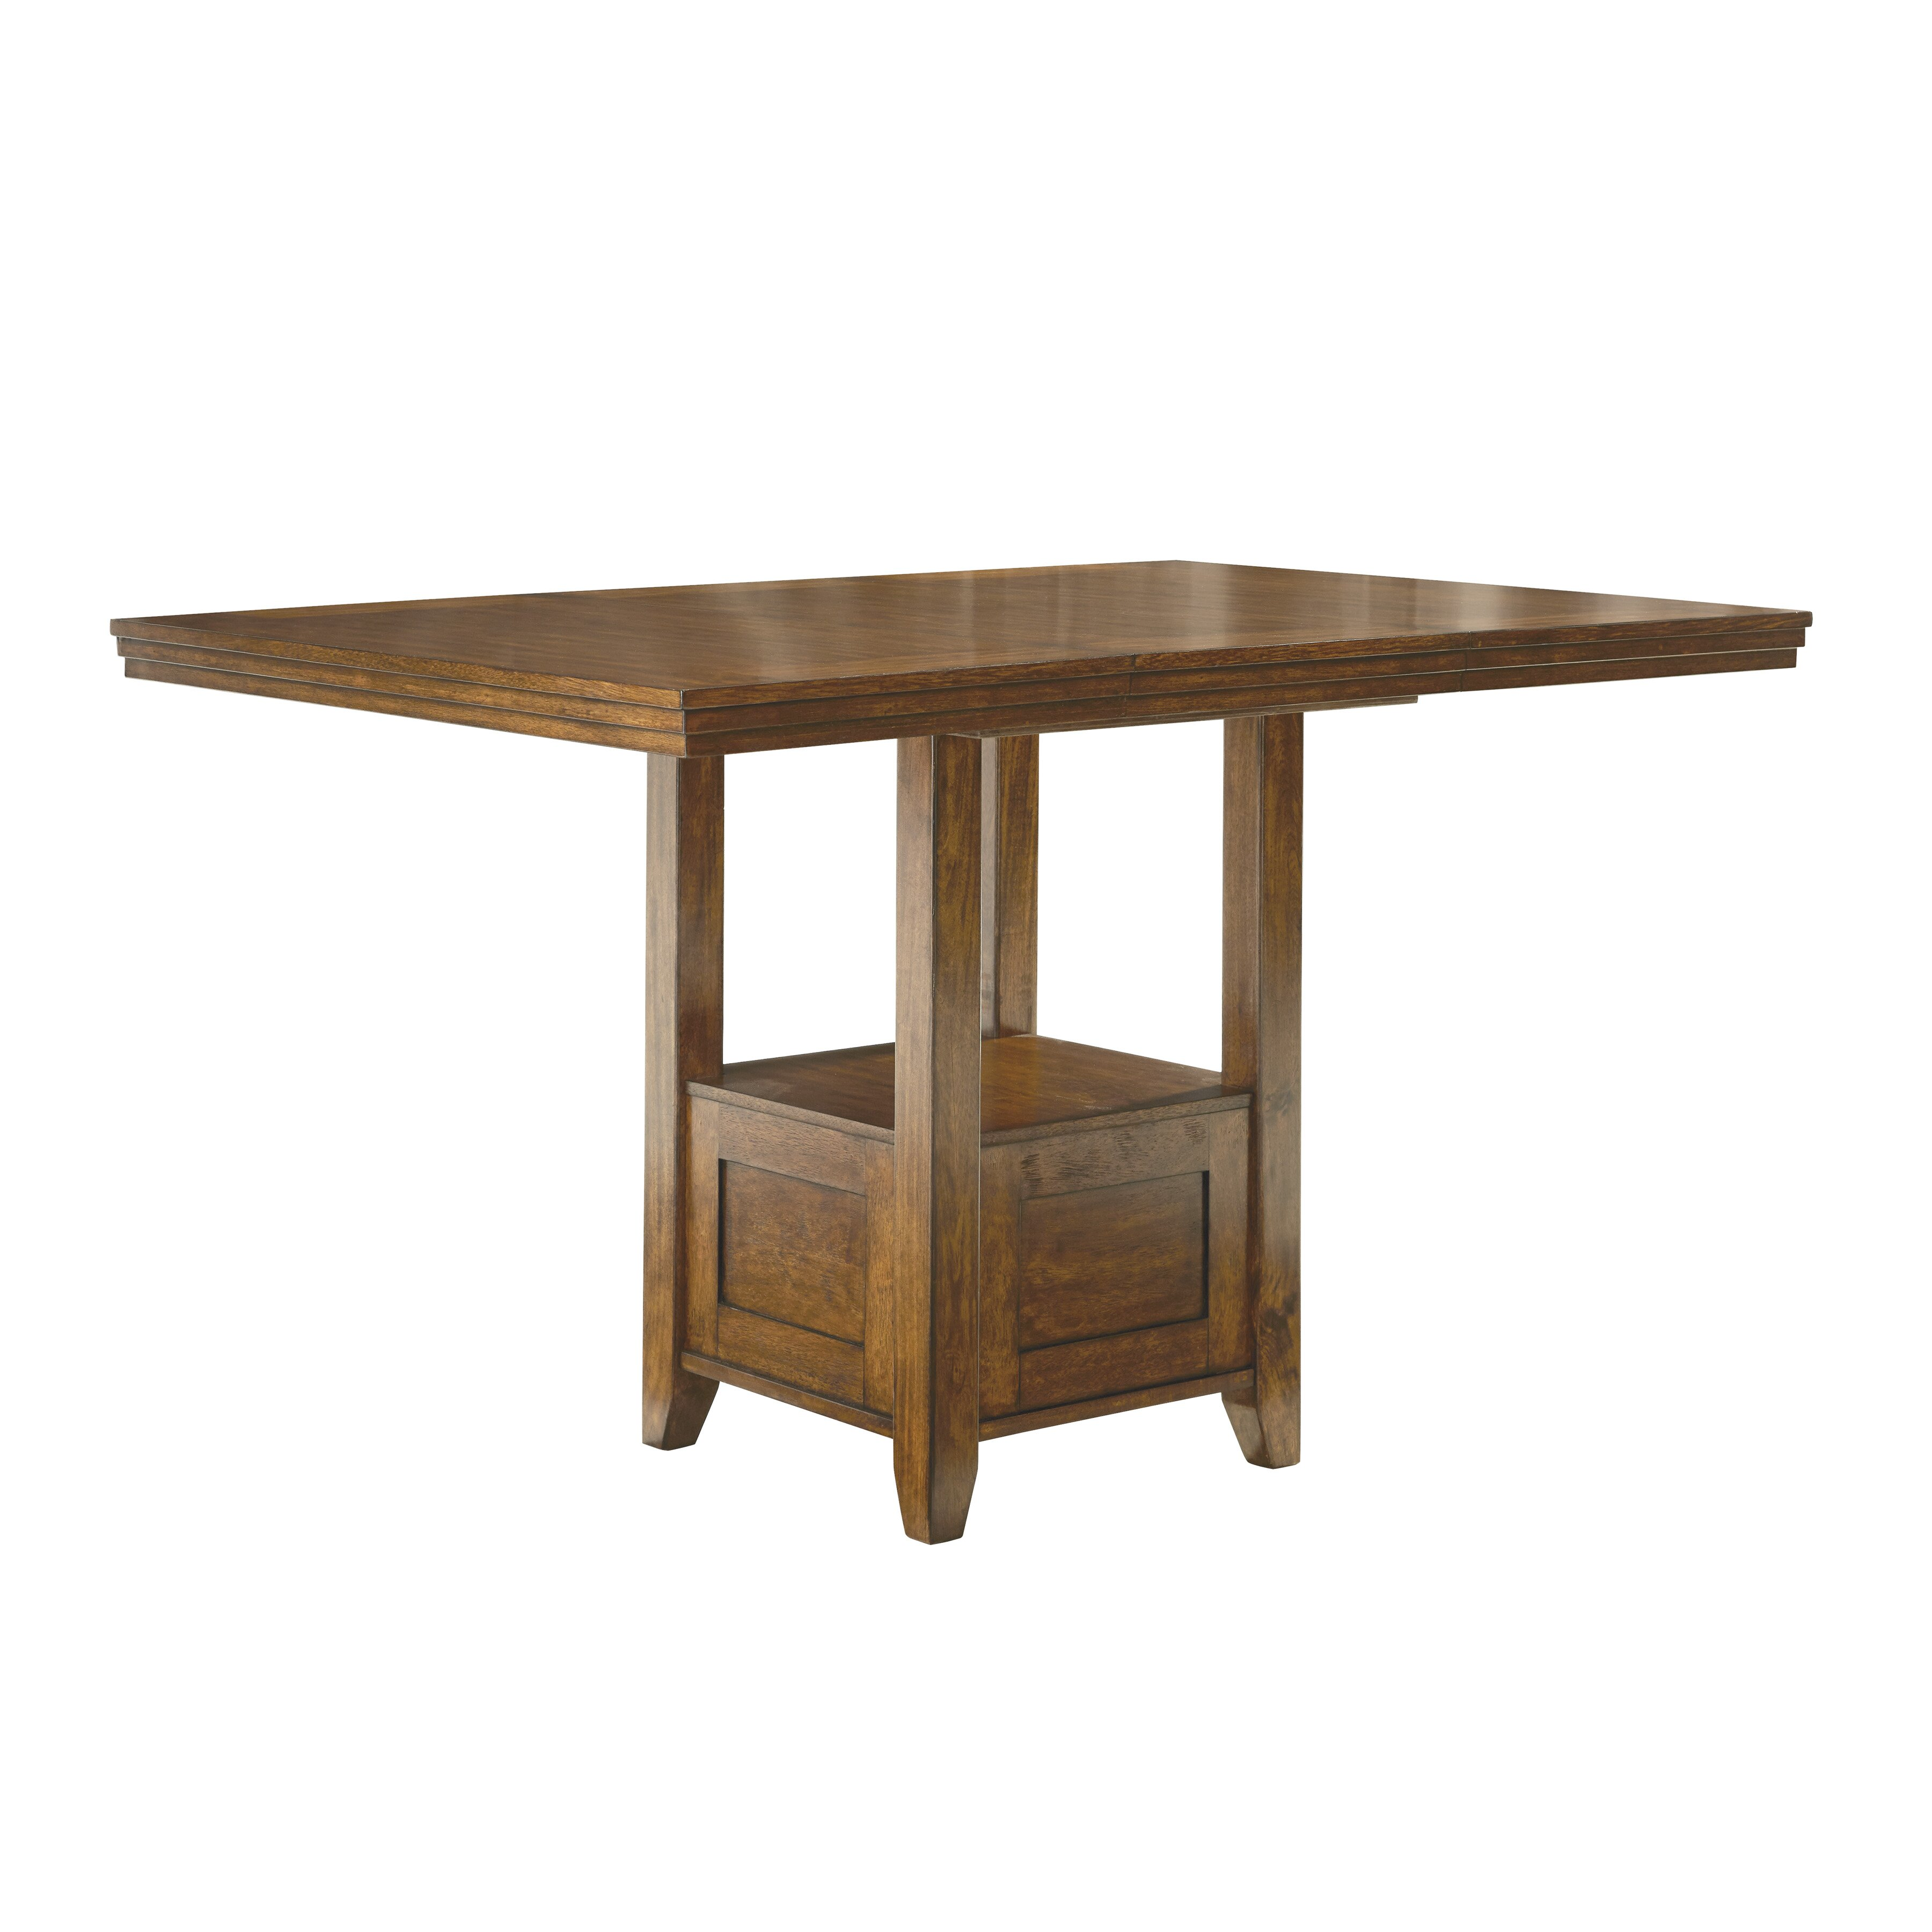 Andover mills rebecca counter height extendable dining for Counter height extendable dining table